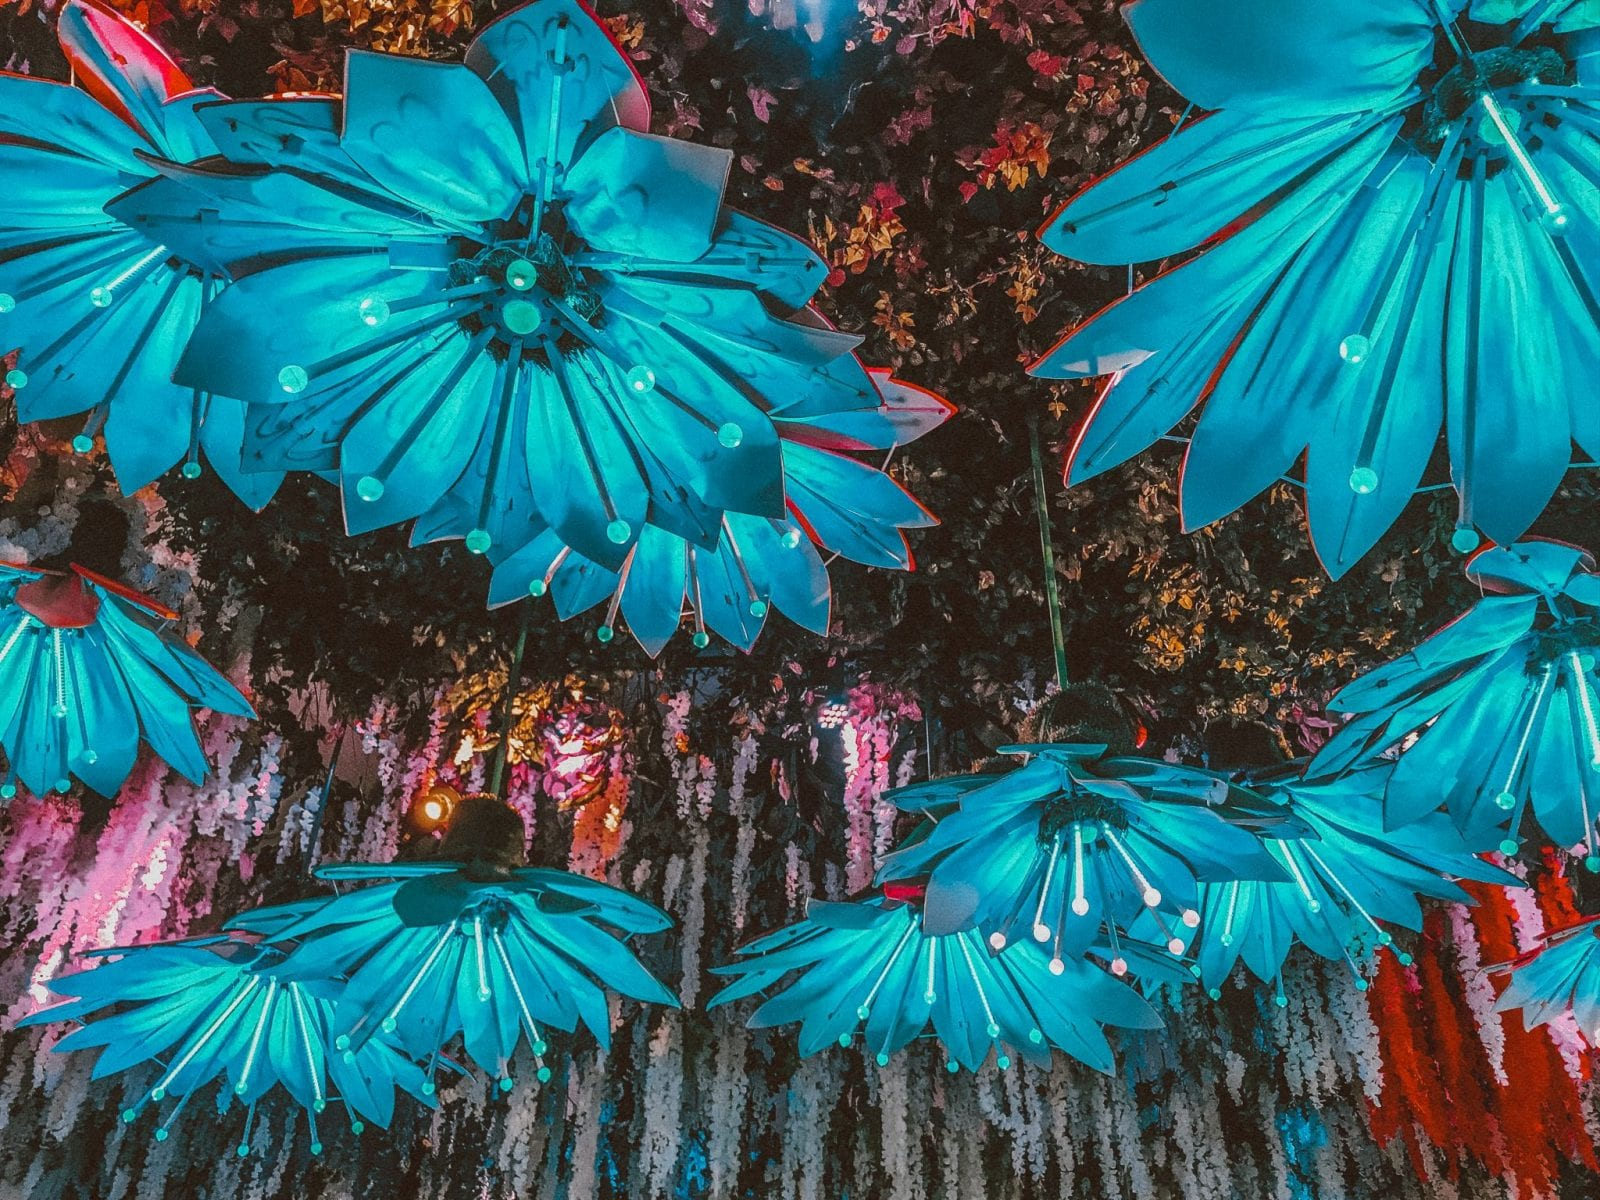 This is a photo of the Coachella decor in 2018, incorporating blue floral.